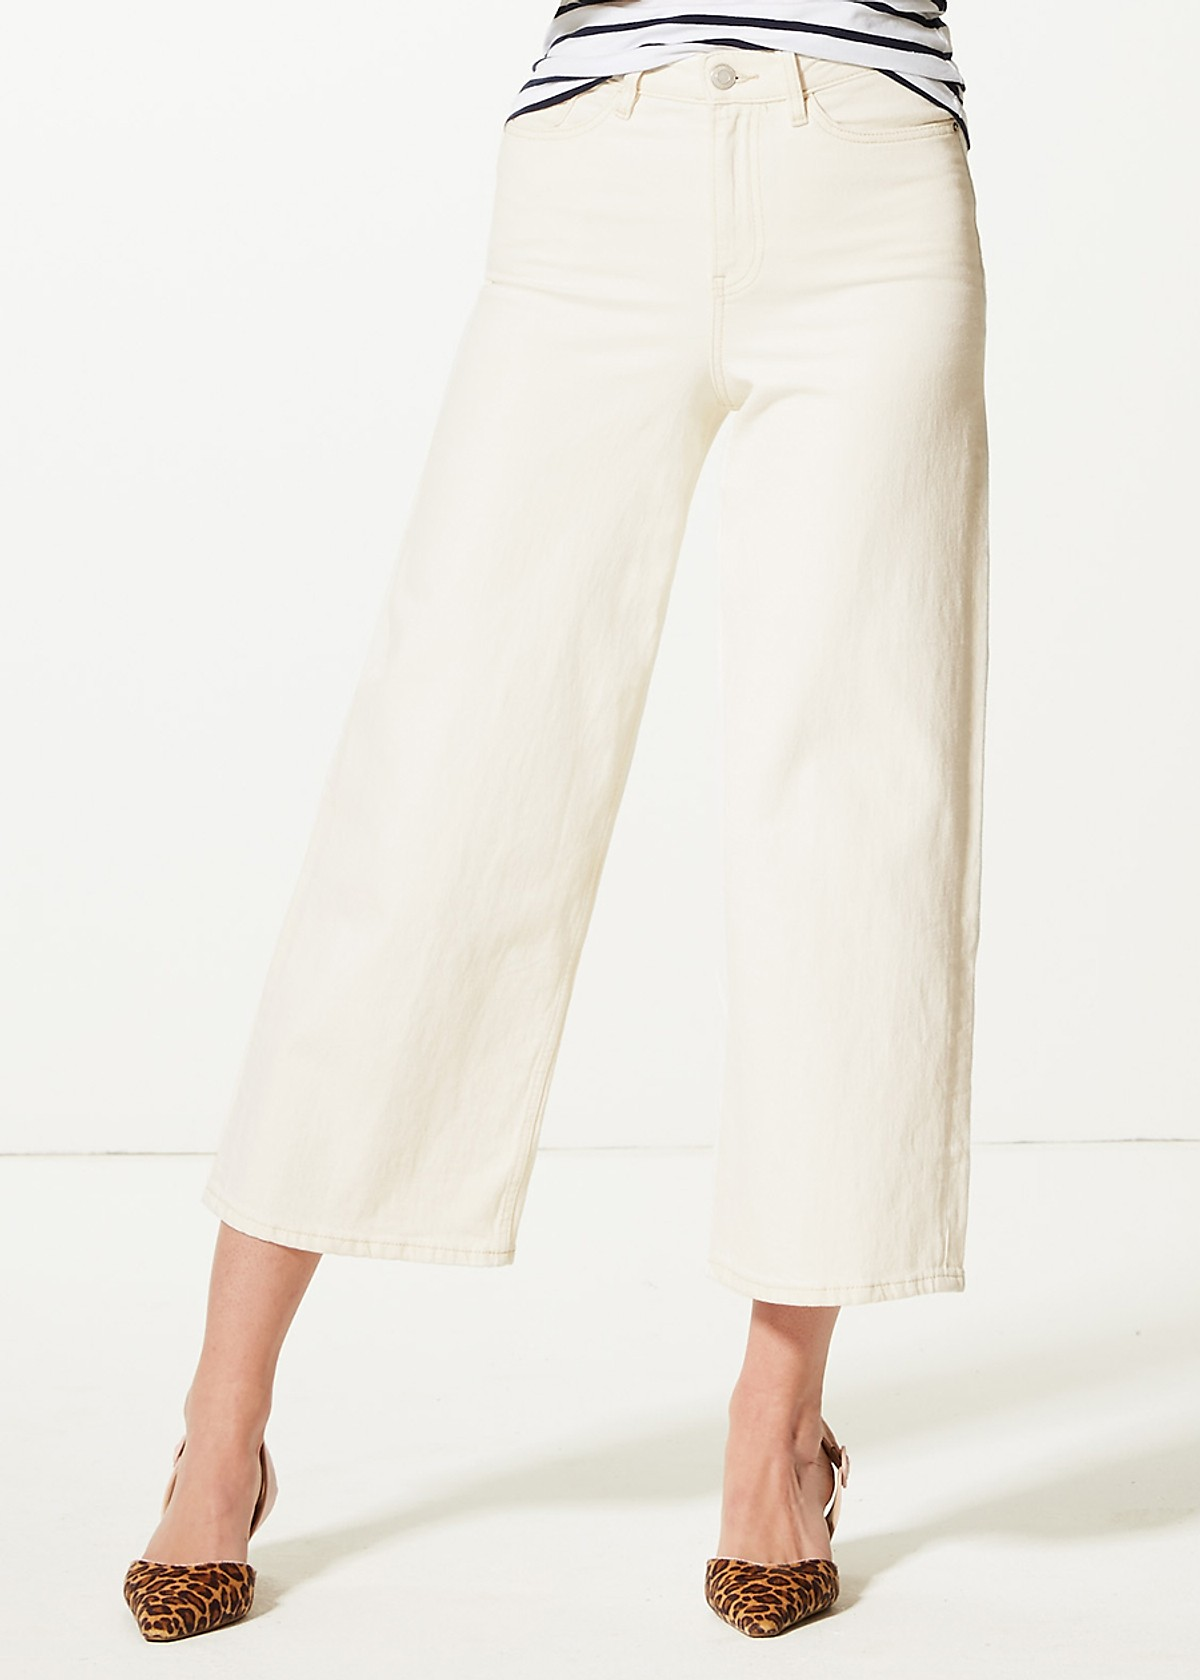 Quần culottes Marks & Spencer